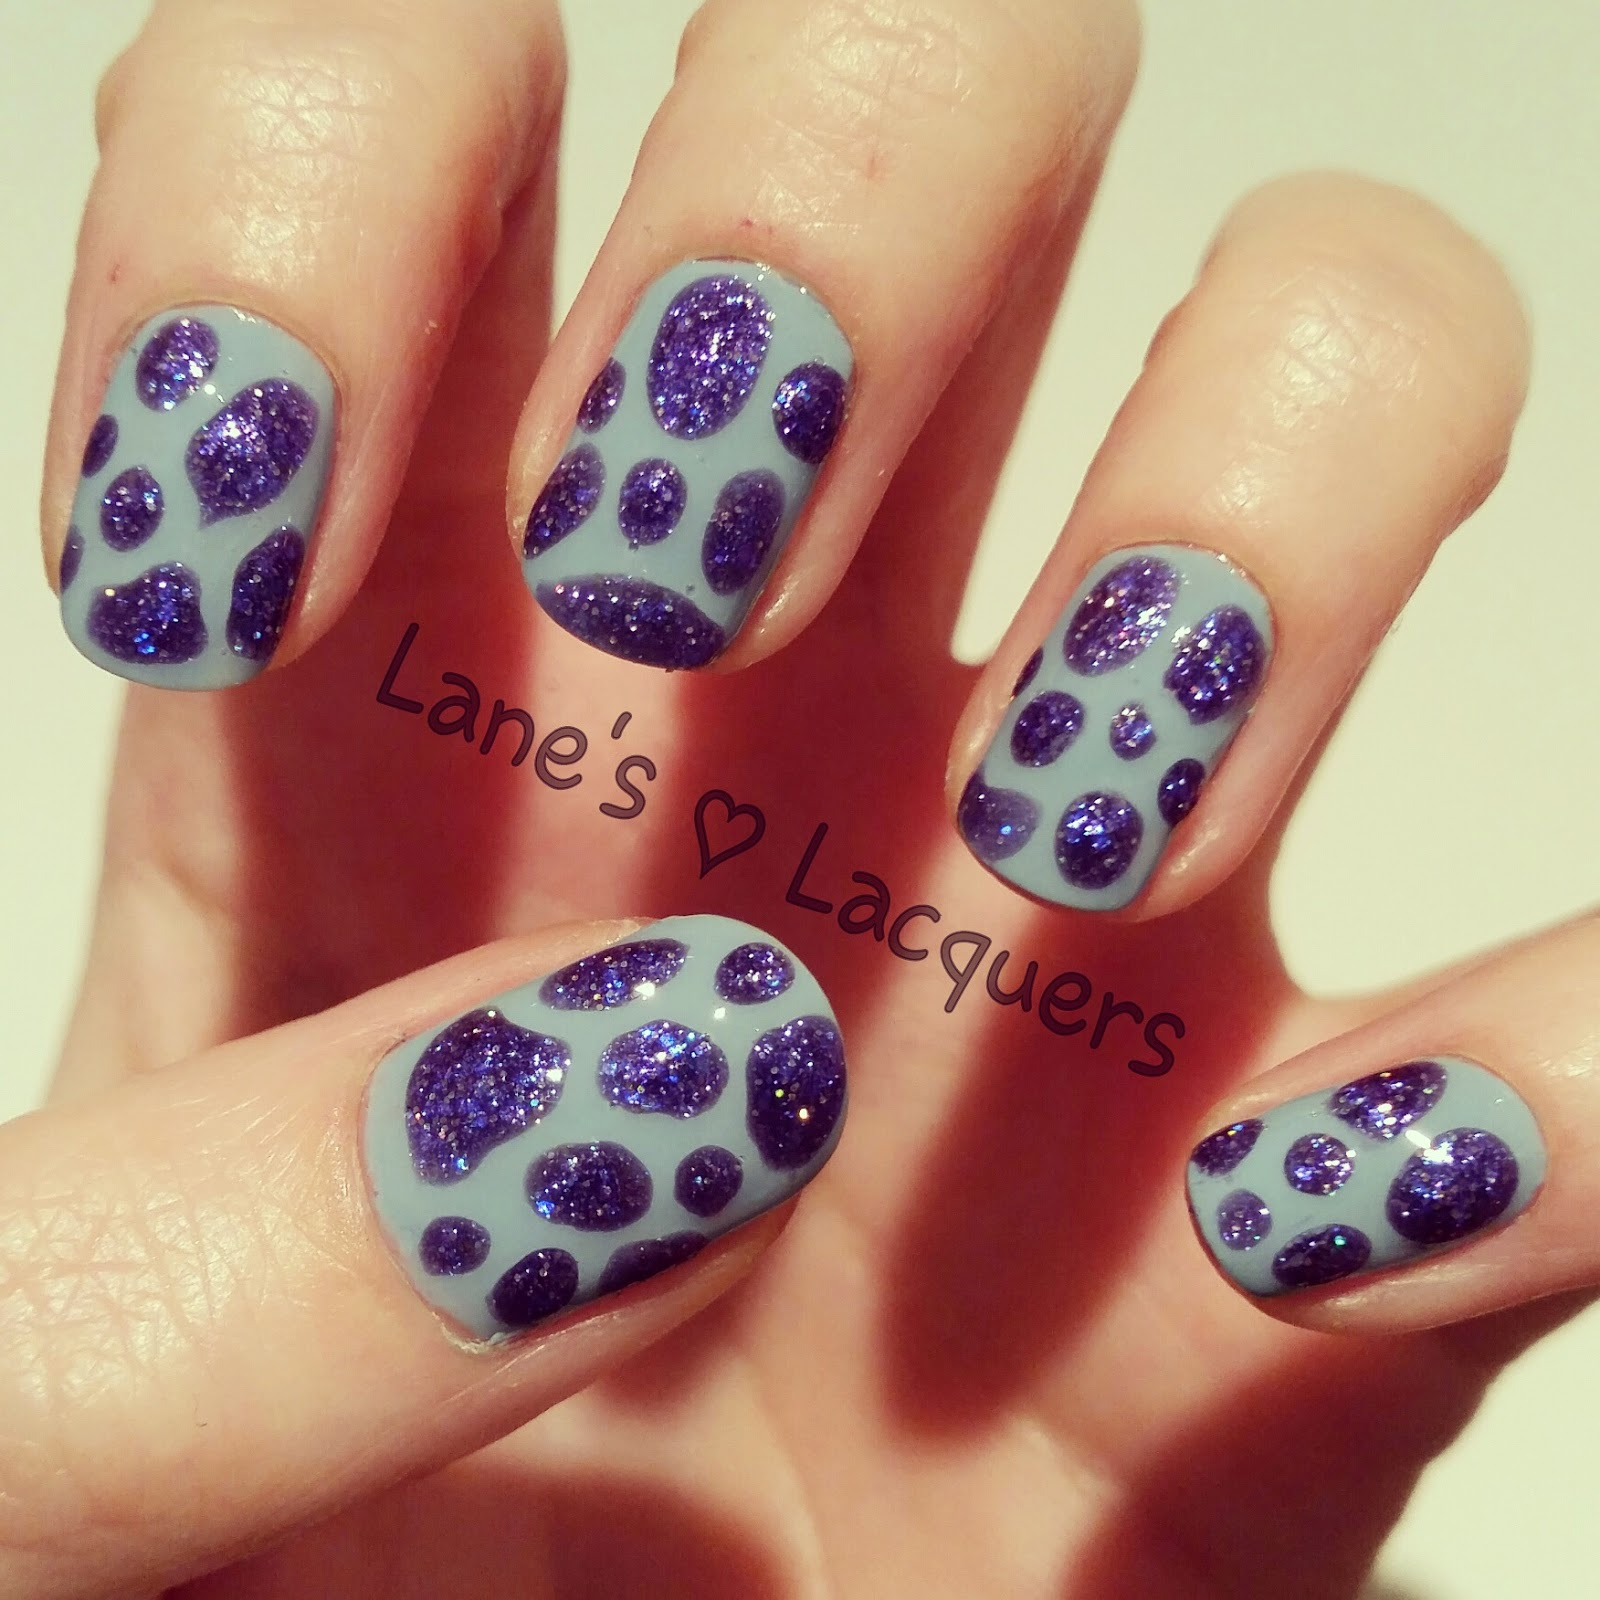 barry-m-elderberry-fashion-icon-blobbicure-nail-art